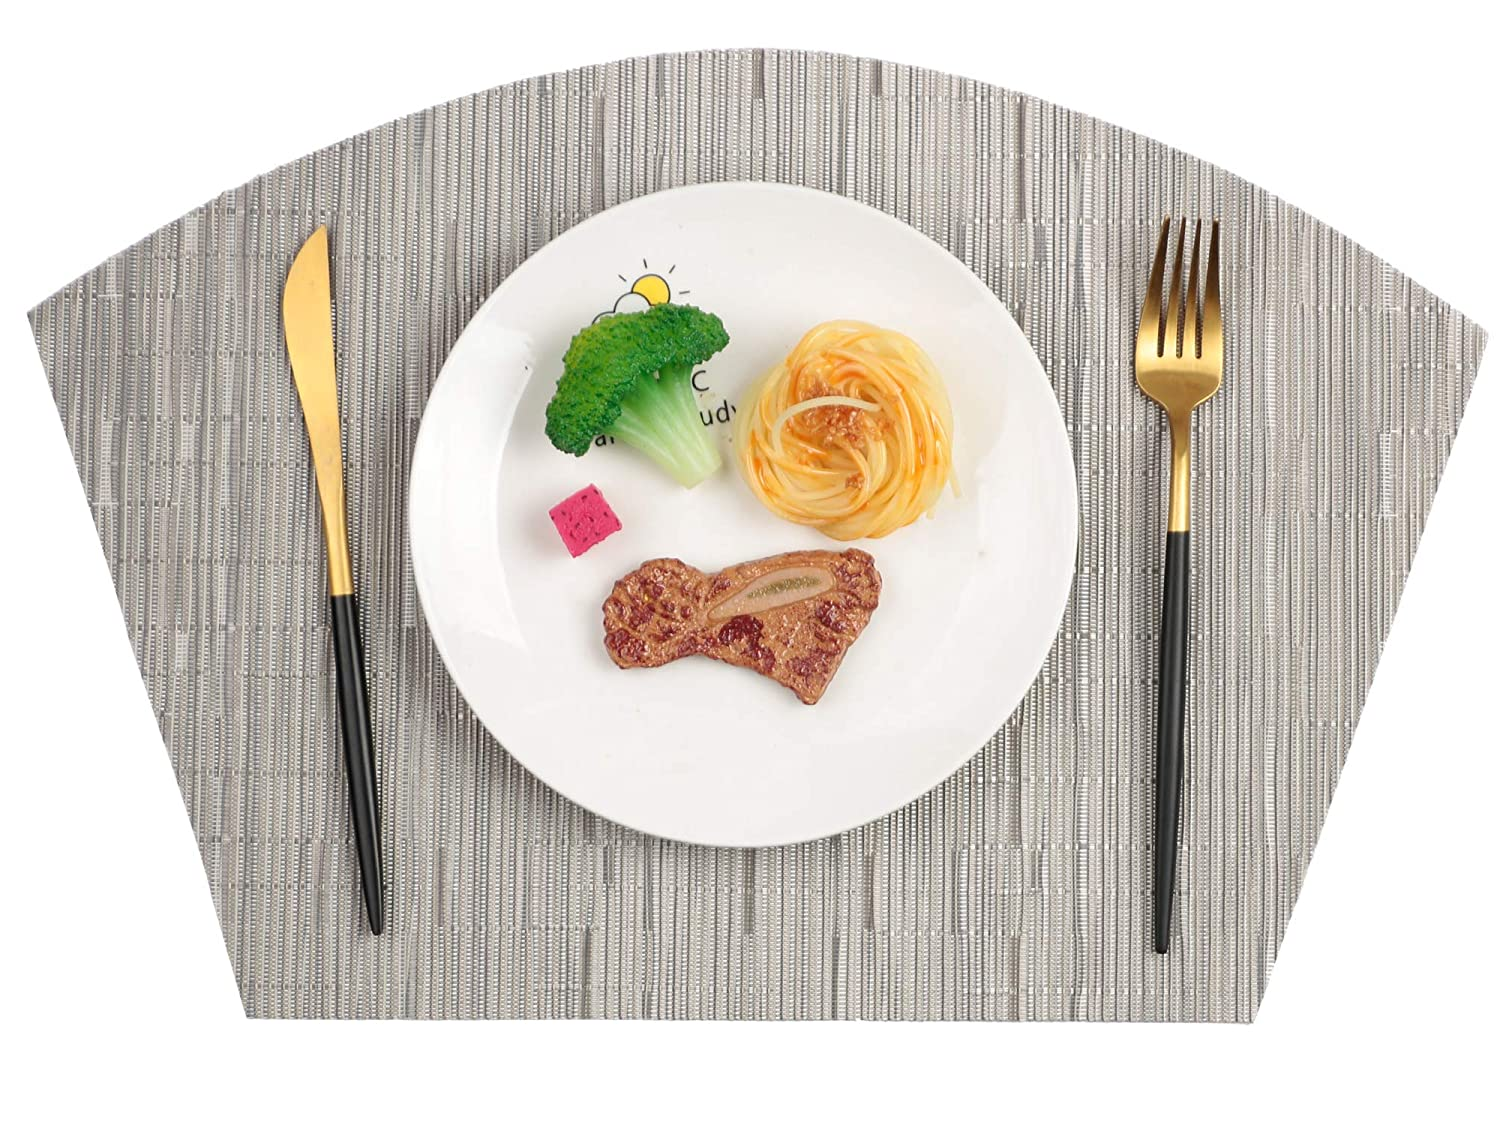 Famibay PVC Wedge Placemats Set of 6 and Table Mats Center Stain Resistant Washable Placemats for Table